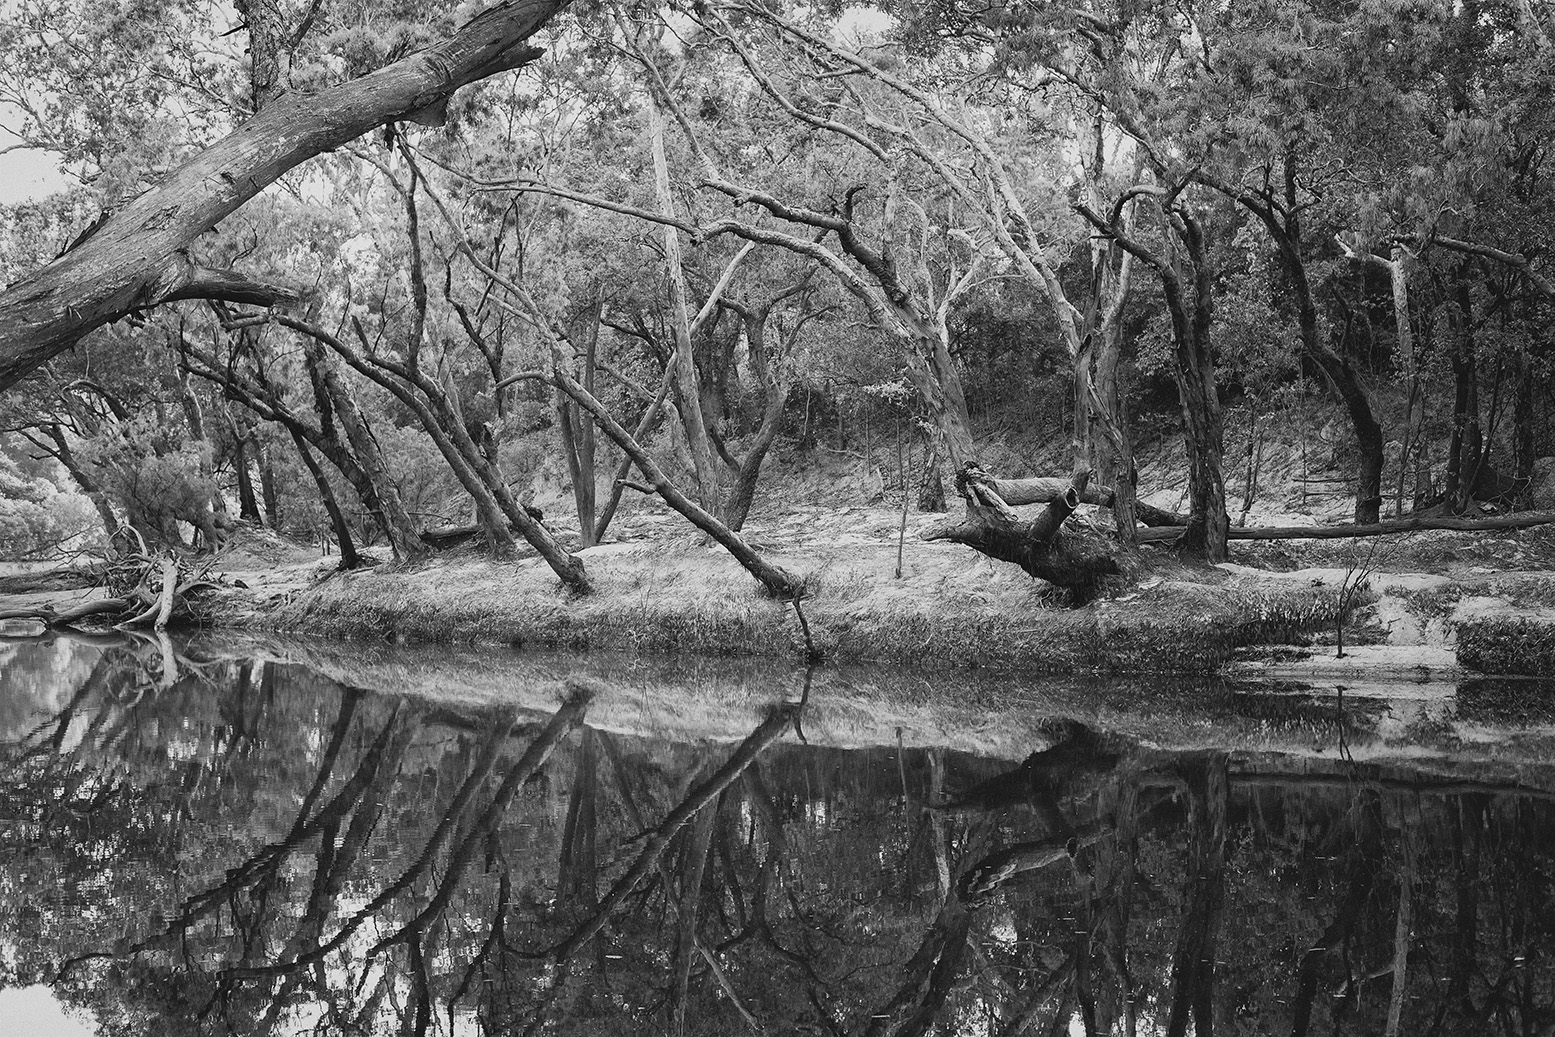 The Wenlock River, Boulder Bend, Steve Irwin Wildlife Reserve.             photography : Russell Shakespeare